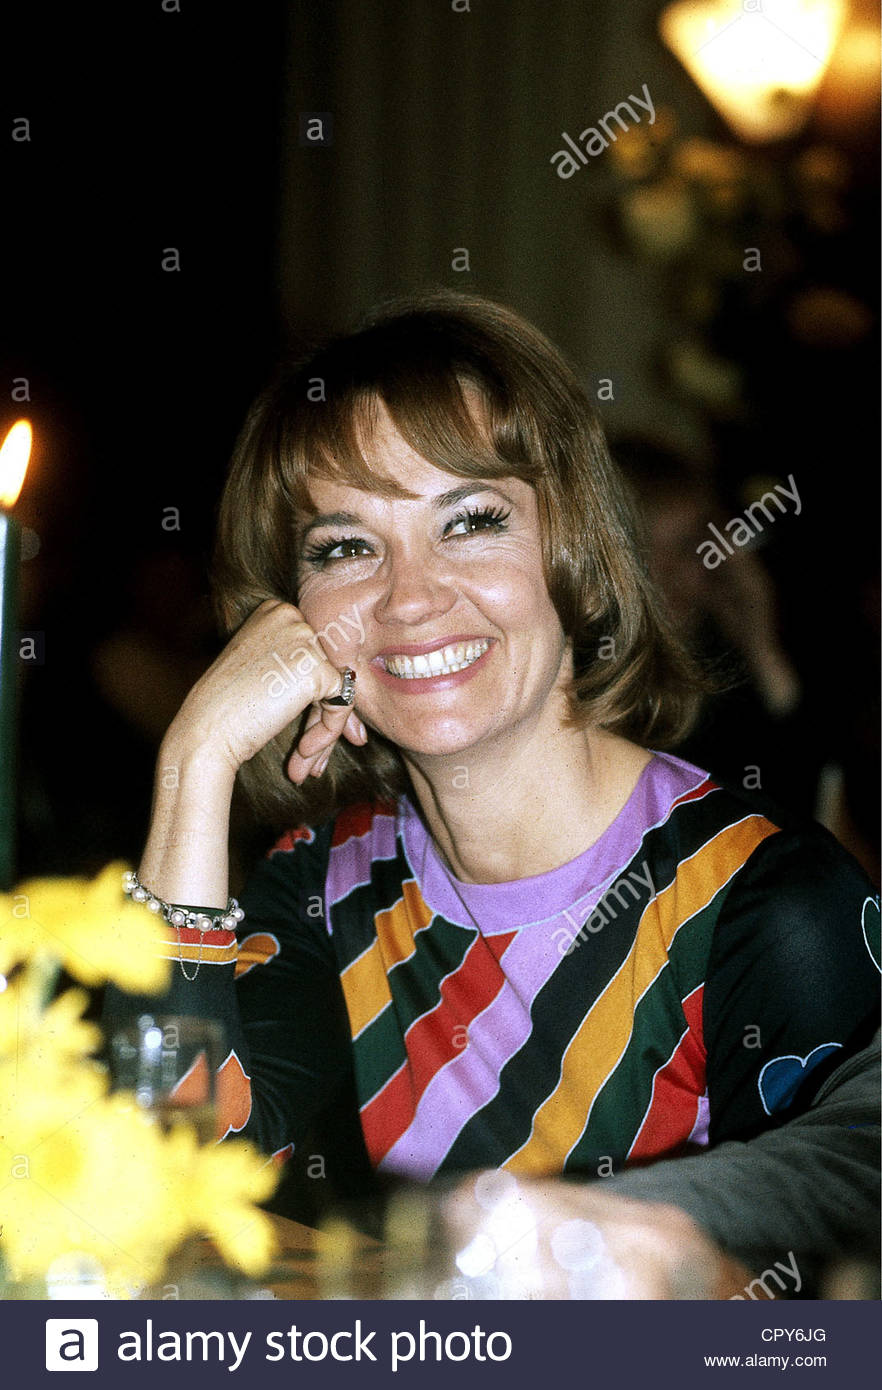 Pulver, Liselotte, * 11.10.1929, Swiss actress, portrait, 1970s, sitting at table, smiling, laughing, relaxed, - Stock Image